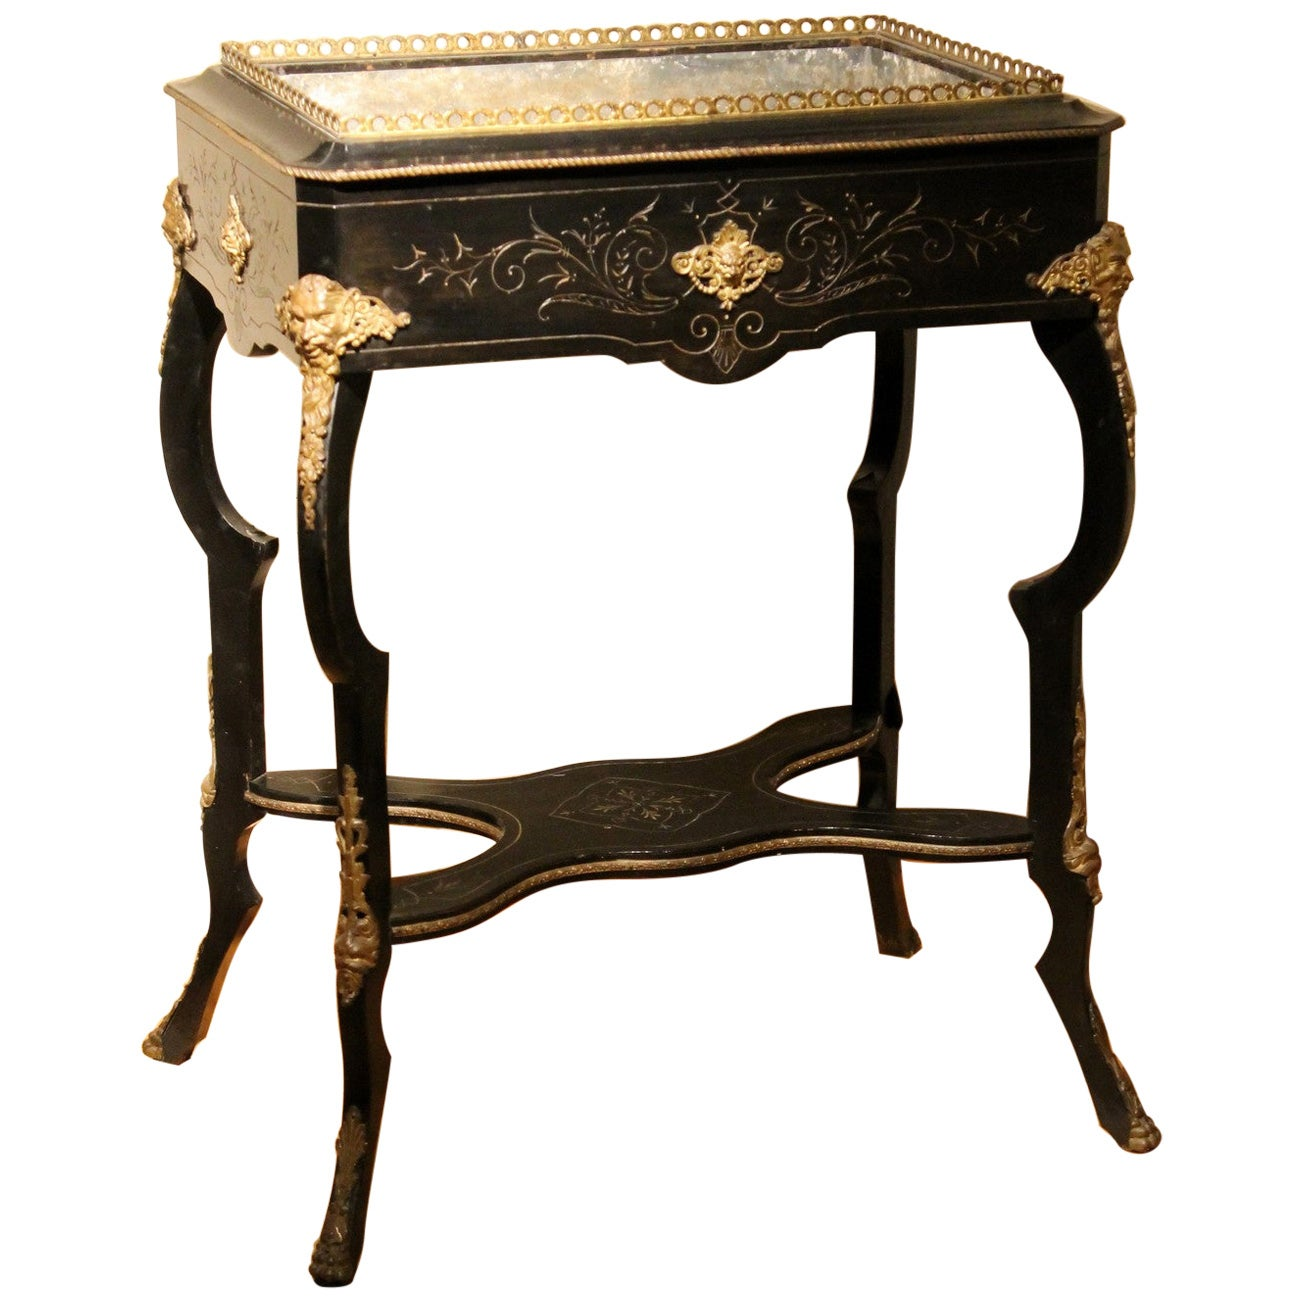 French 19th Century Napoleon III Ebonized and Gilt Bronze Planter Table